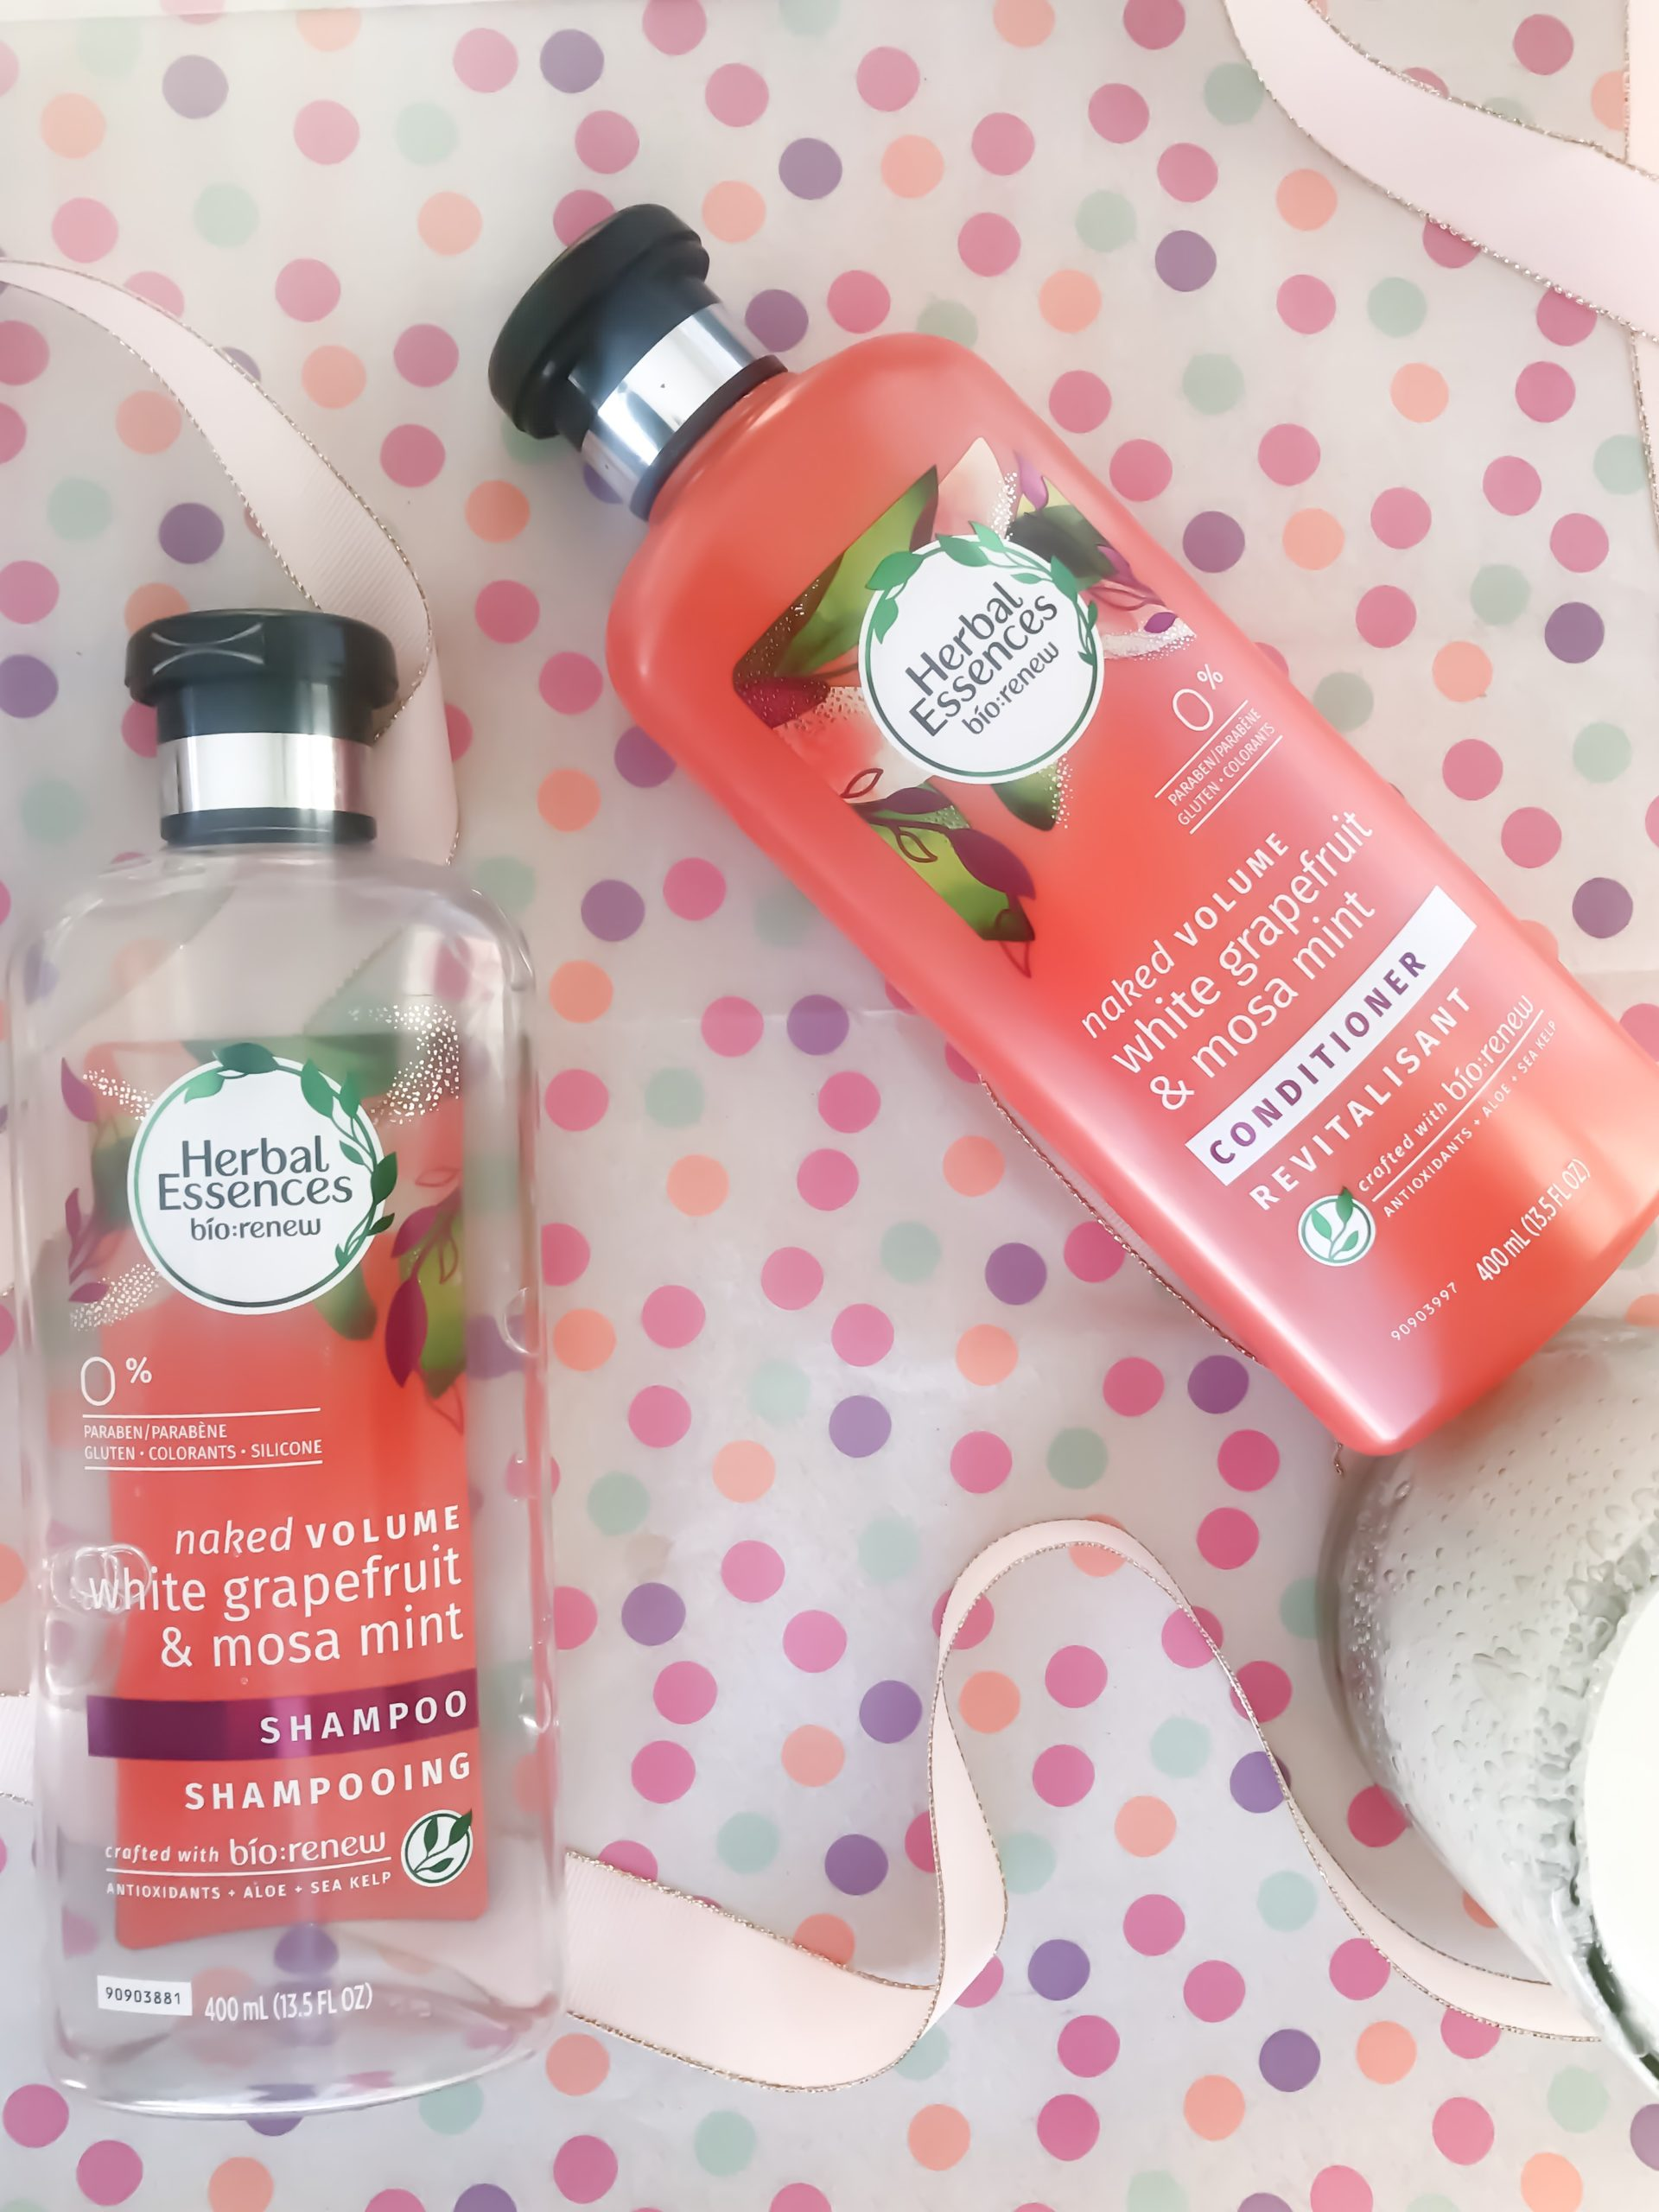 herbal essences with bio:renew featured image